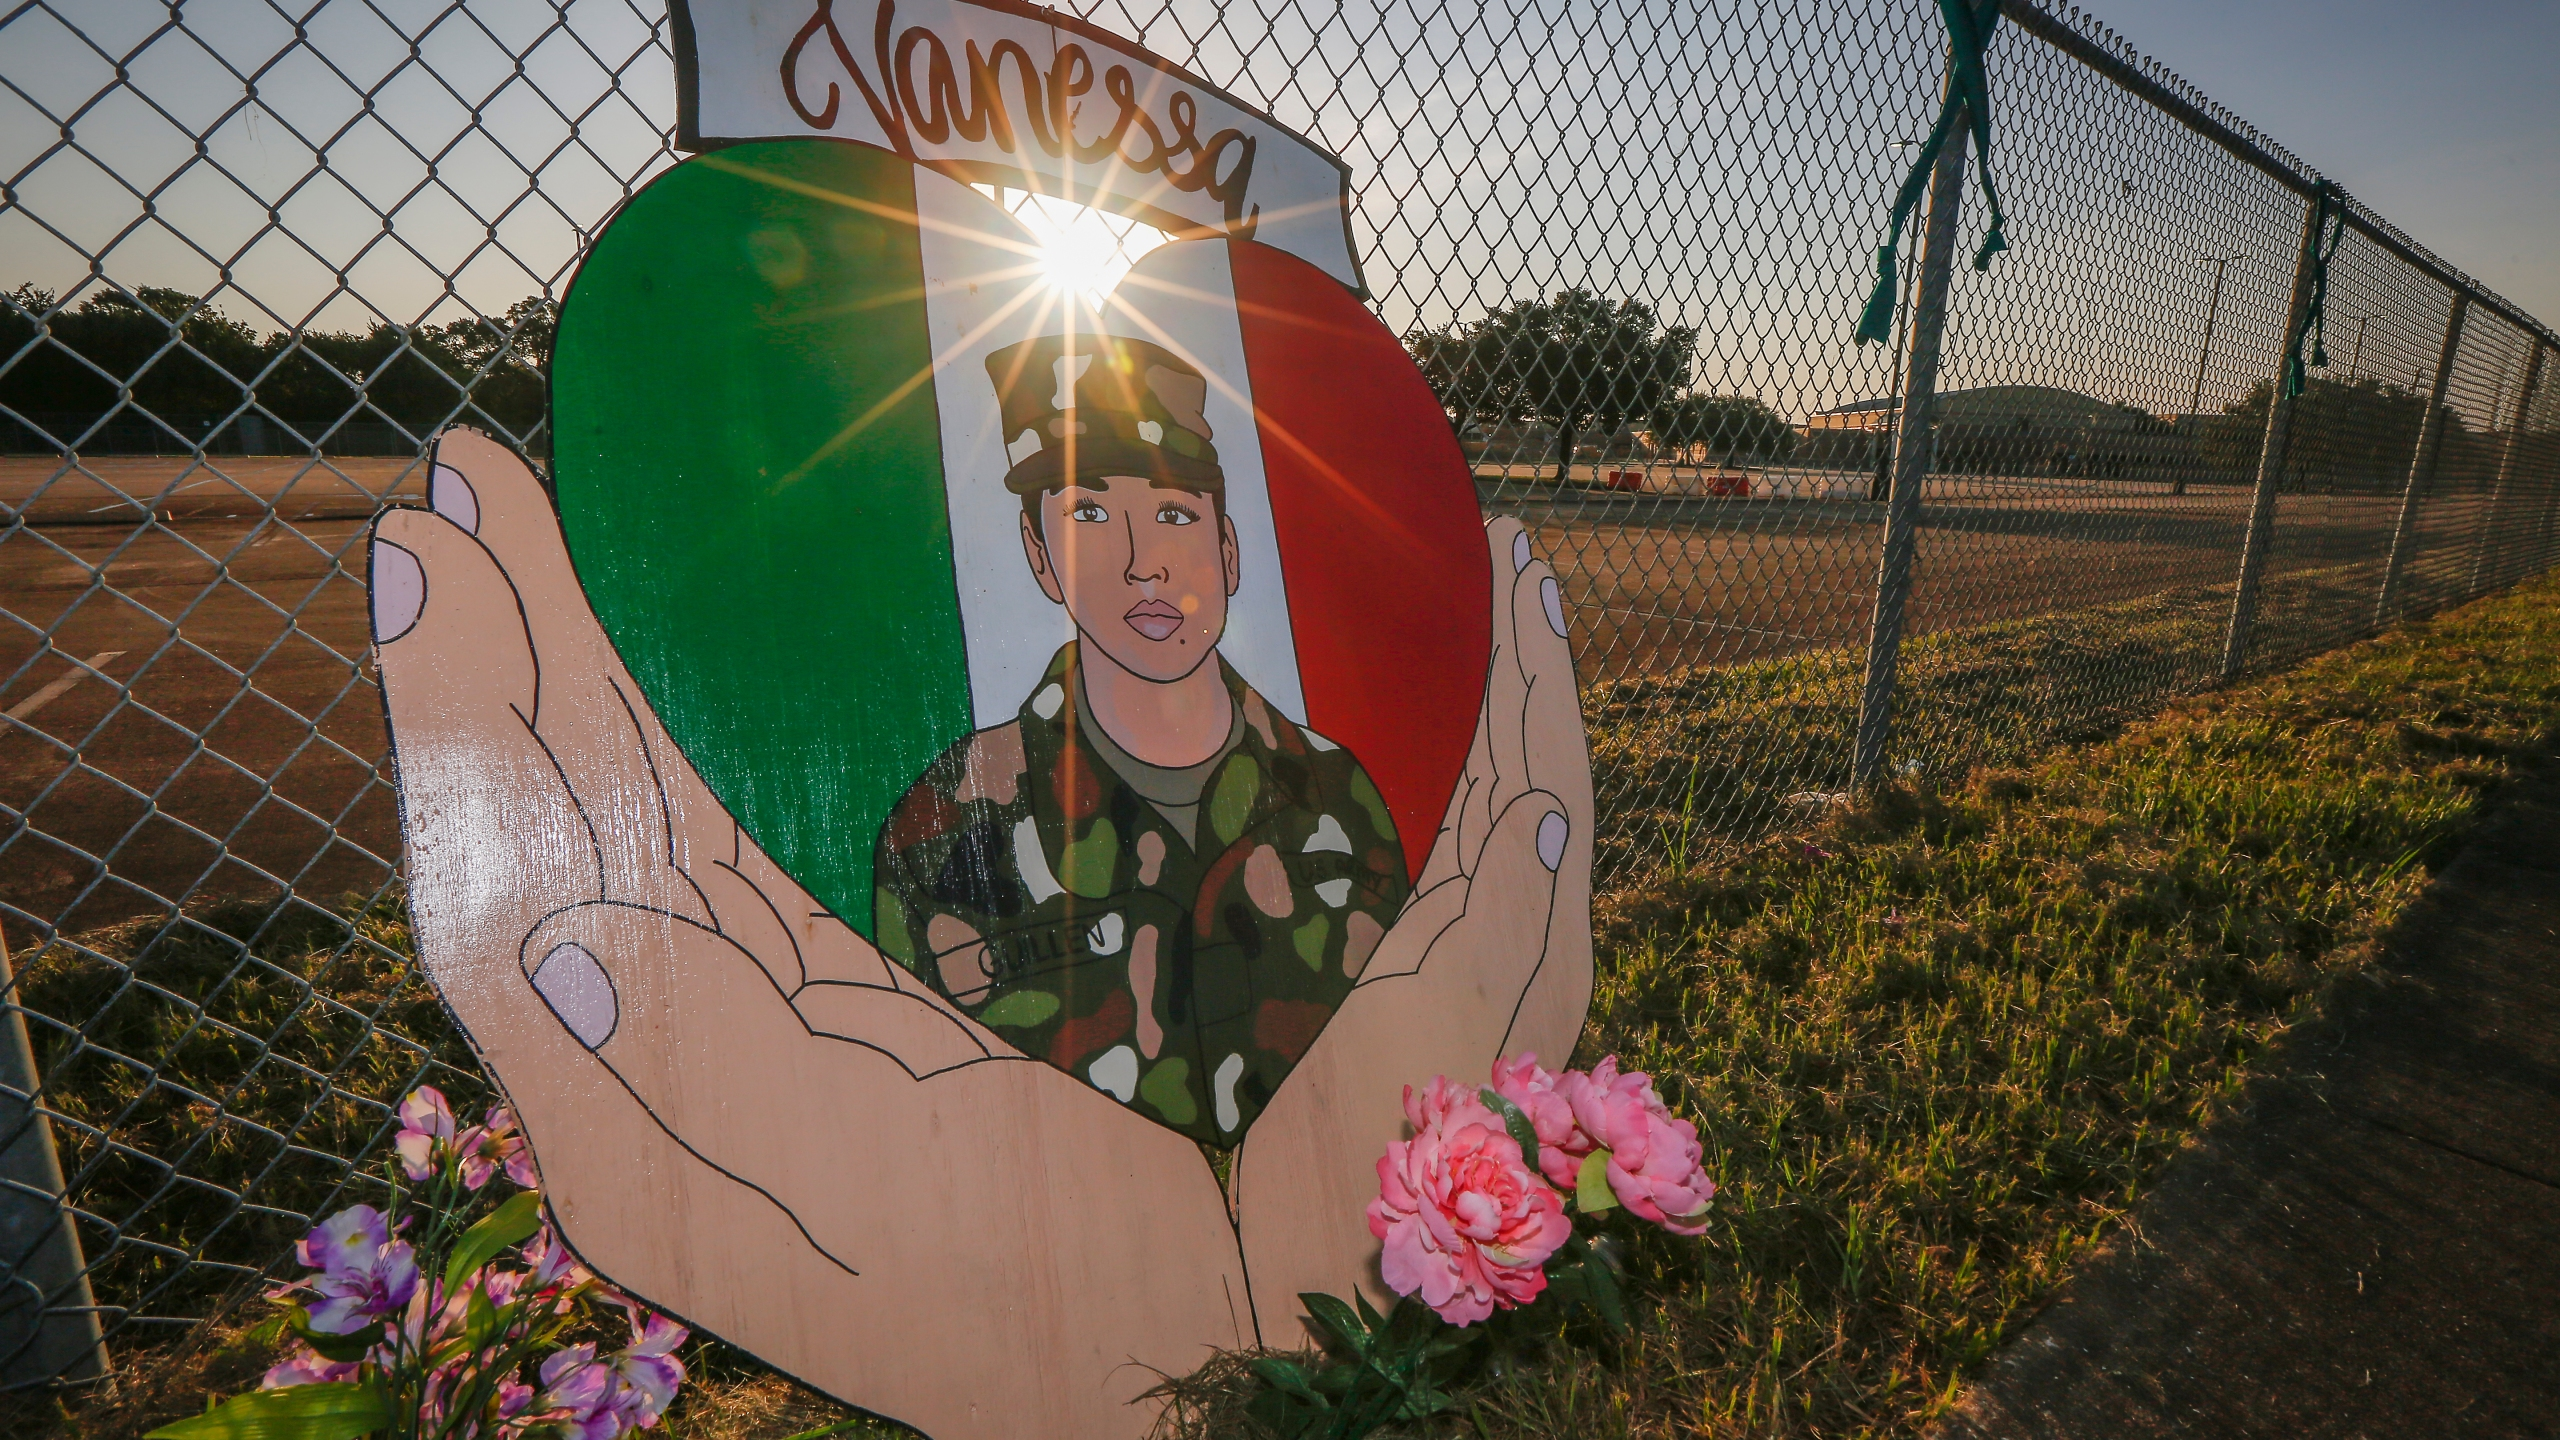 A small memorial for U.S. Army Specialist Vanessa Guillen is set up around Cesar Chavez High School Friday, Aug. 14, 2020, in Houston. Investigators said Guillen was bludgeoned to death on base by a fellow soldier, who later killed himself. (Steve Gonzales/Houston Chronicle via AP)